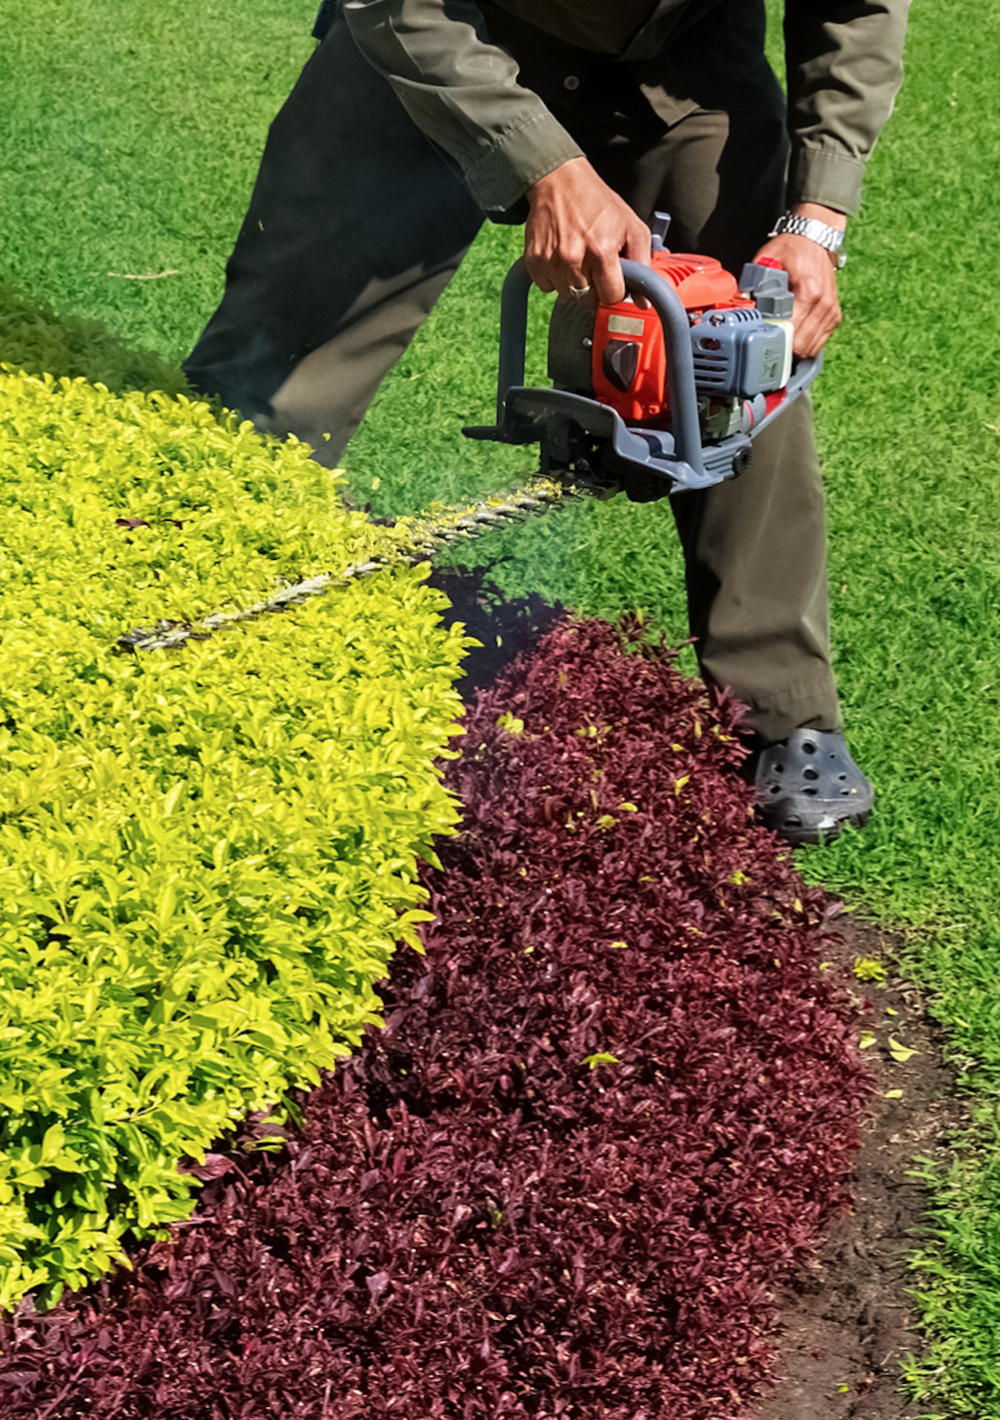 Landscape maintenance including shrub trimming in Wexford, Allegheny County, PA